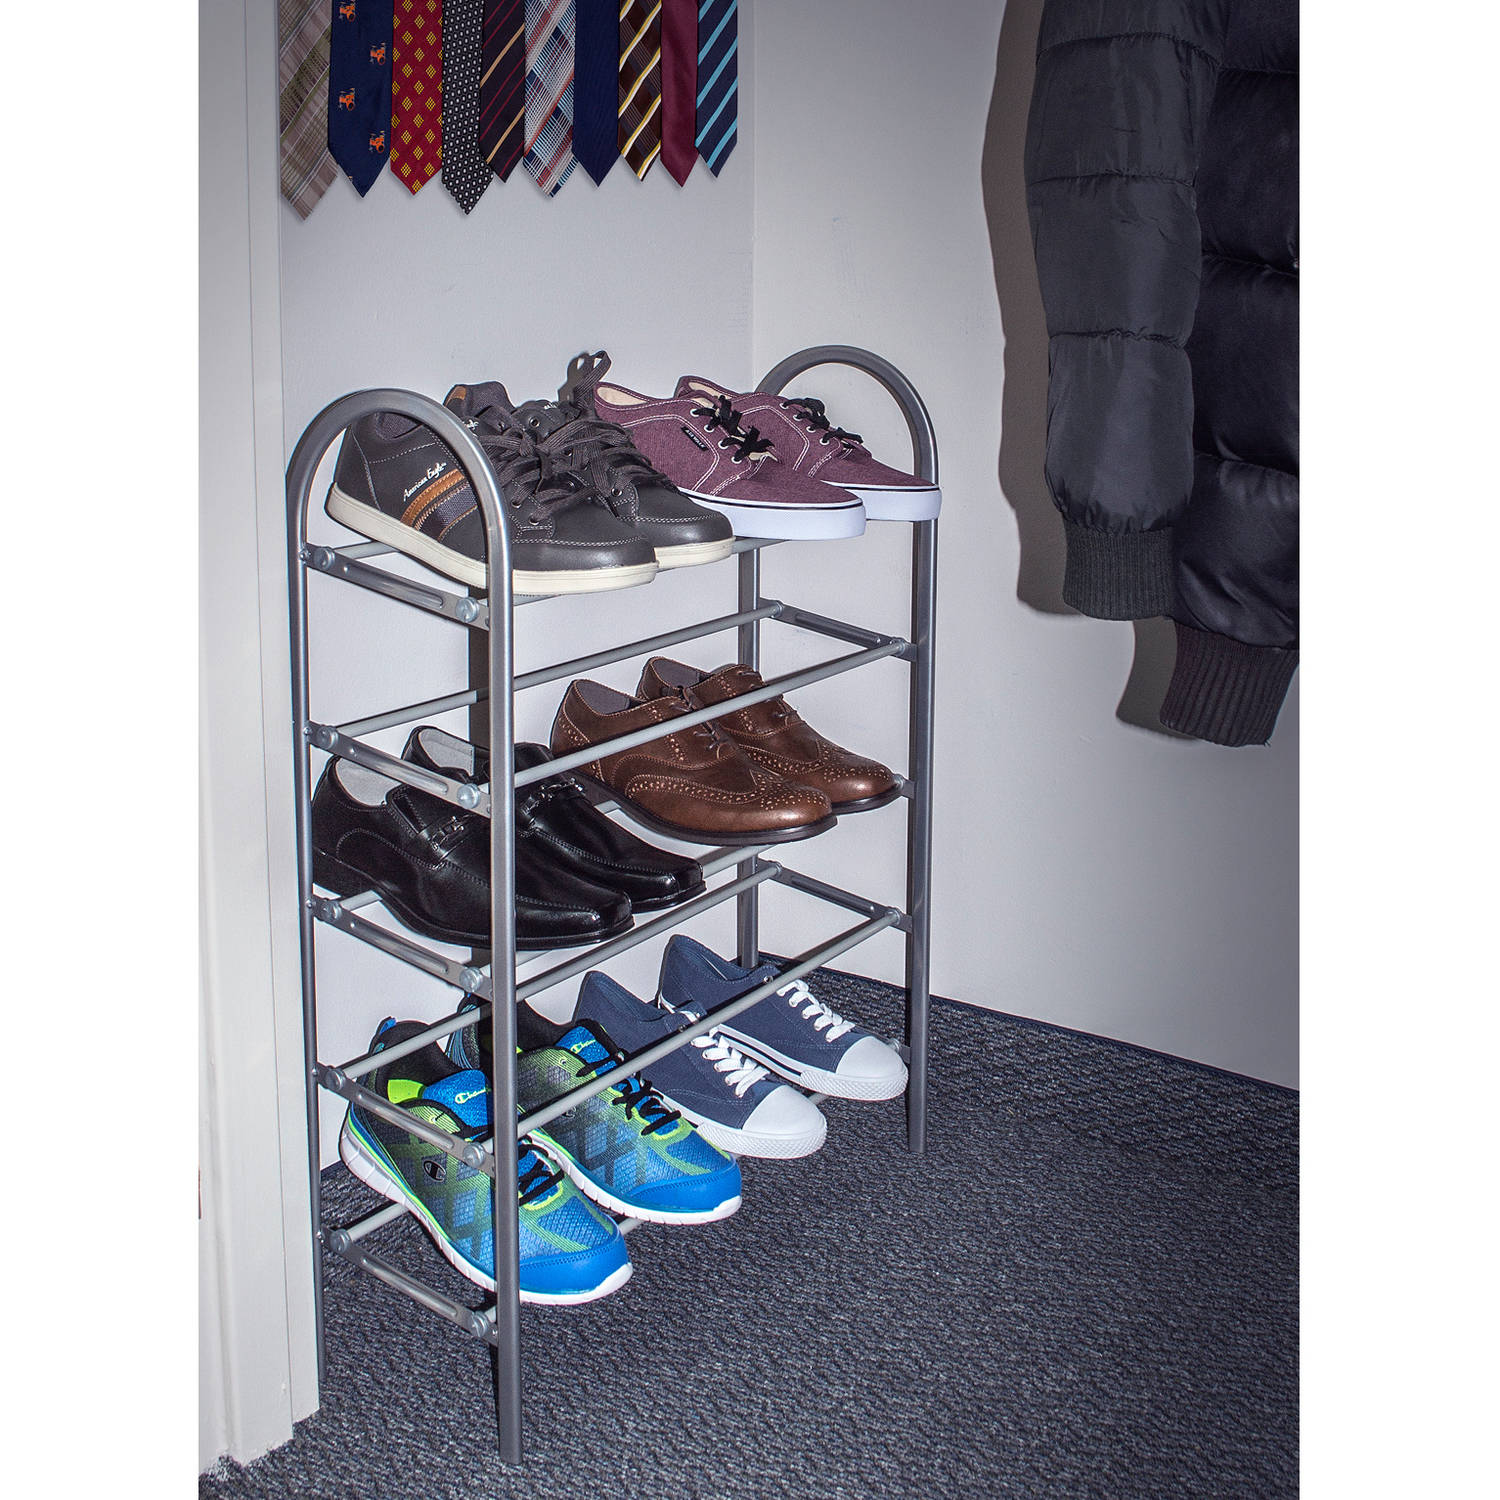 Sorbus Shoe Rack Organizer Storage, 5 Levels For Shoes, Holds Up To 15 Pairs